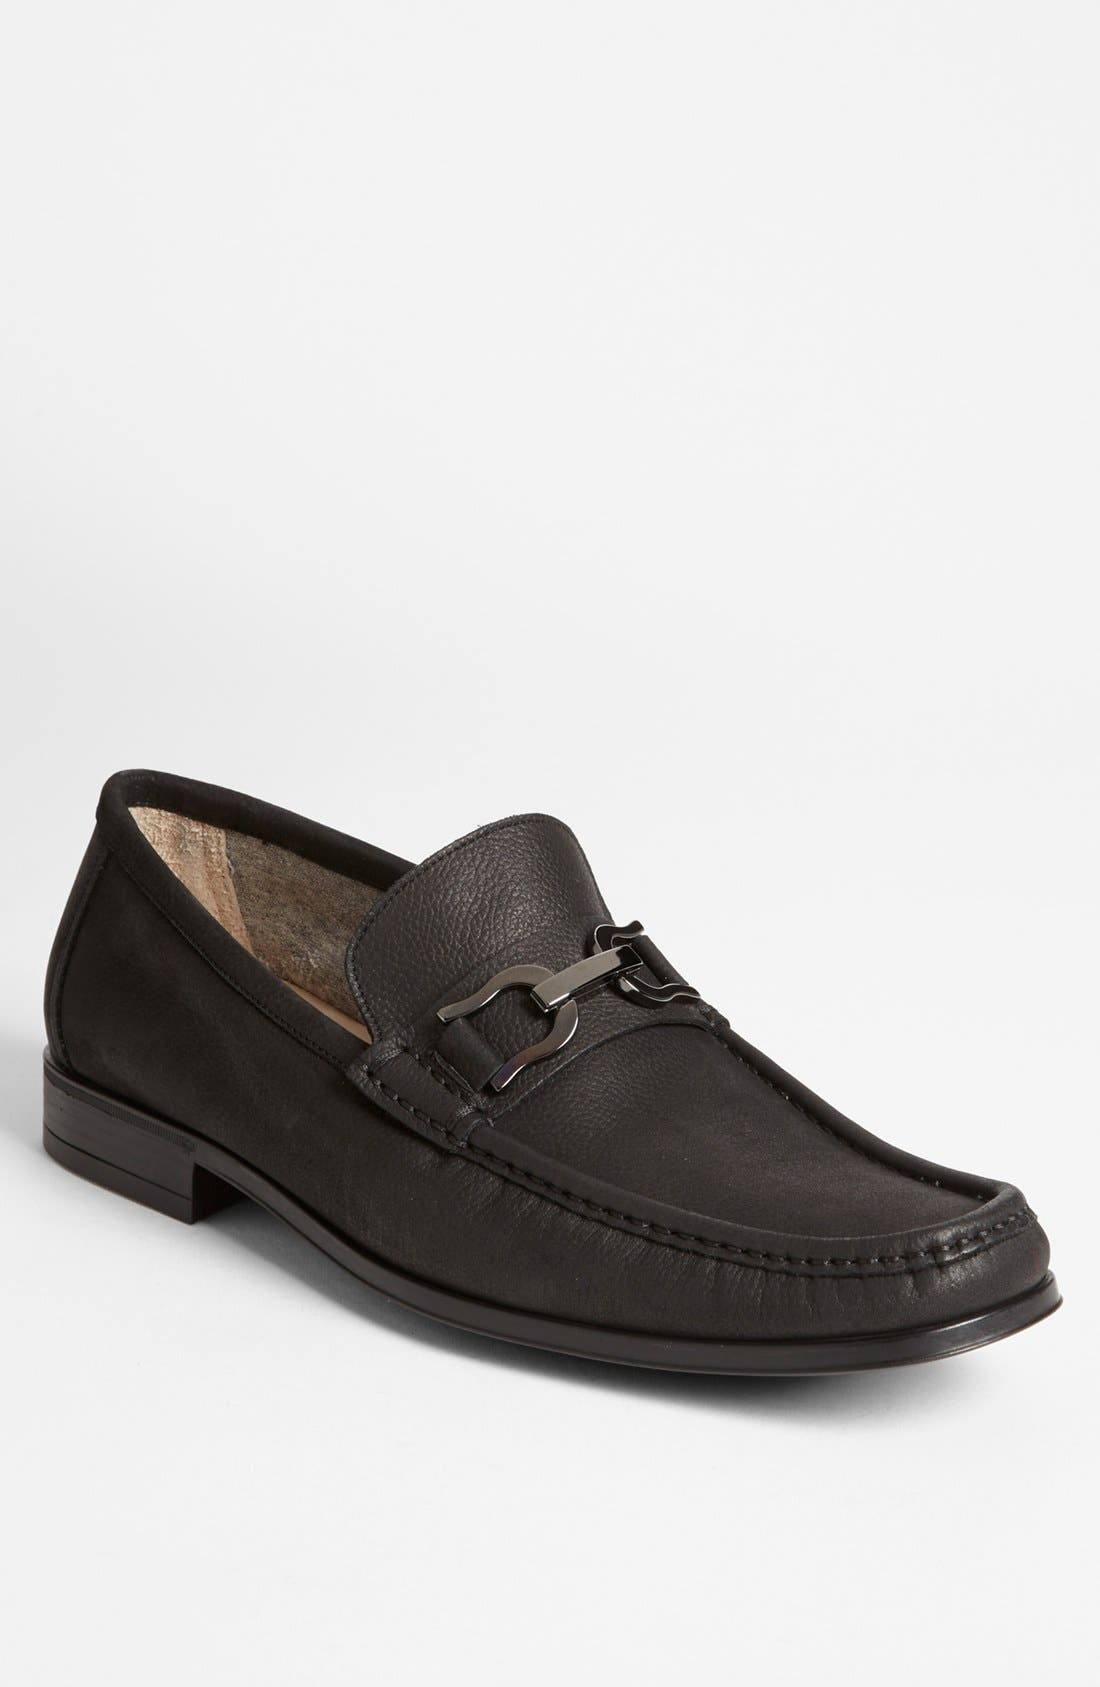 Alternate Image 1 Selected - Bruno Magli 'Mikko' Bit Loafer